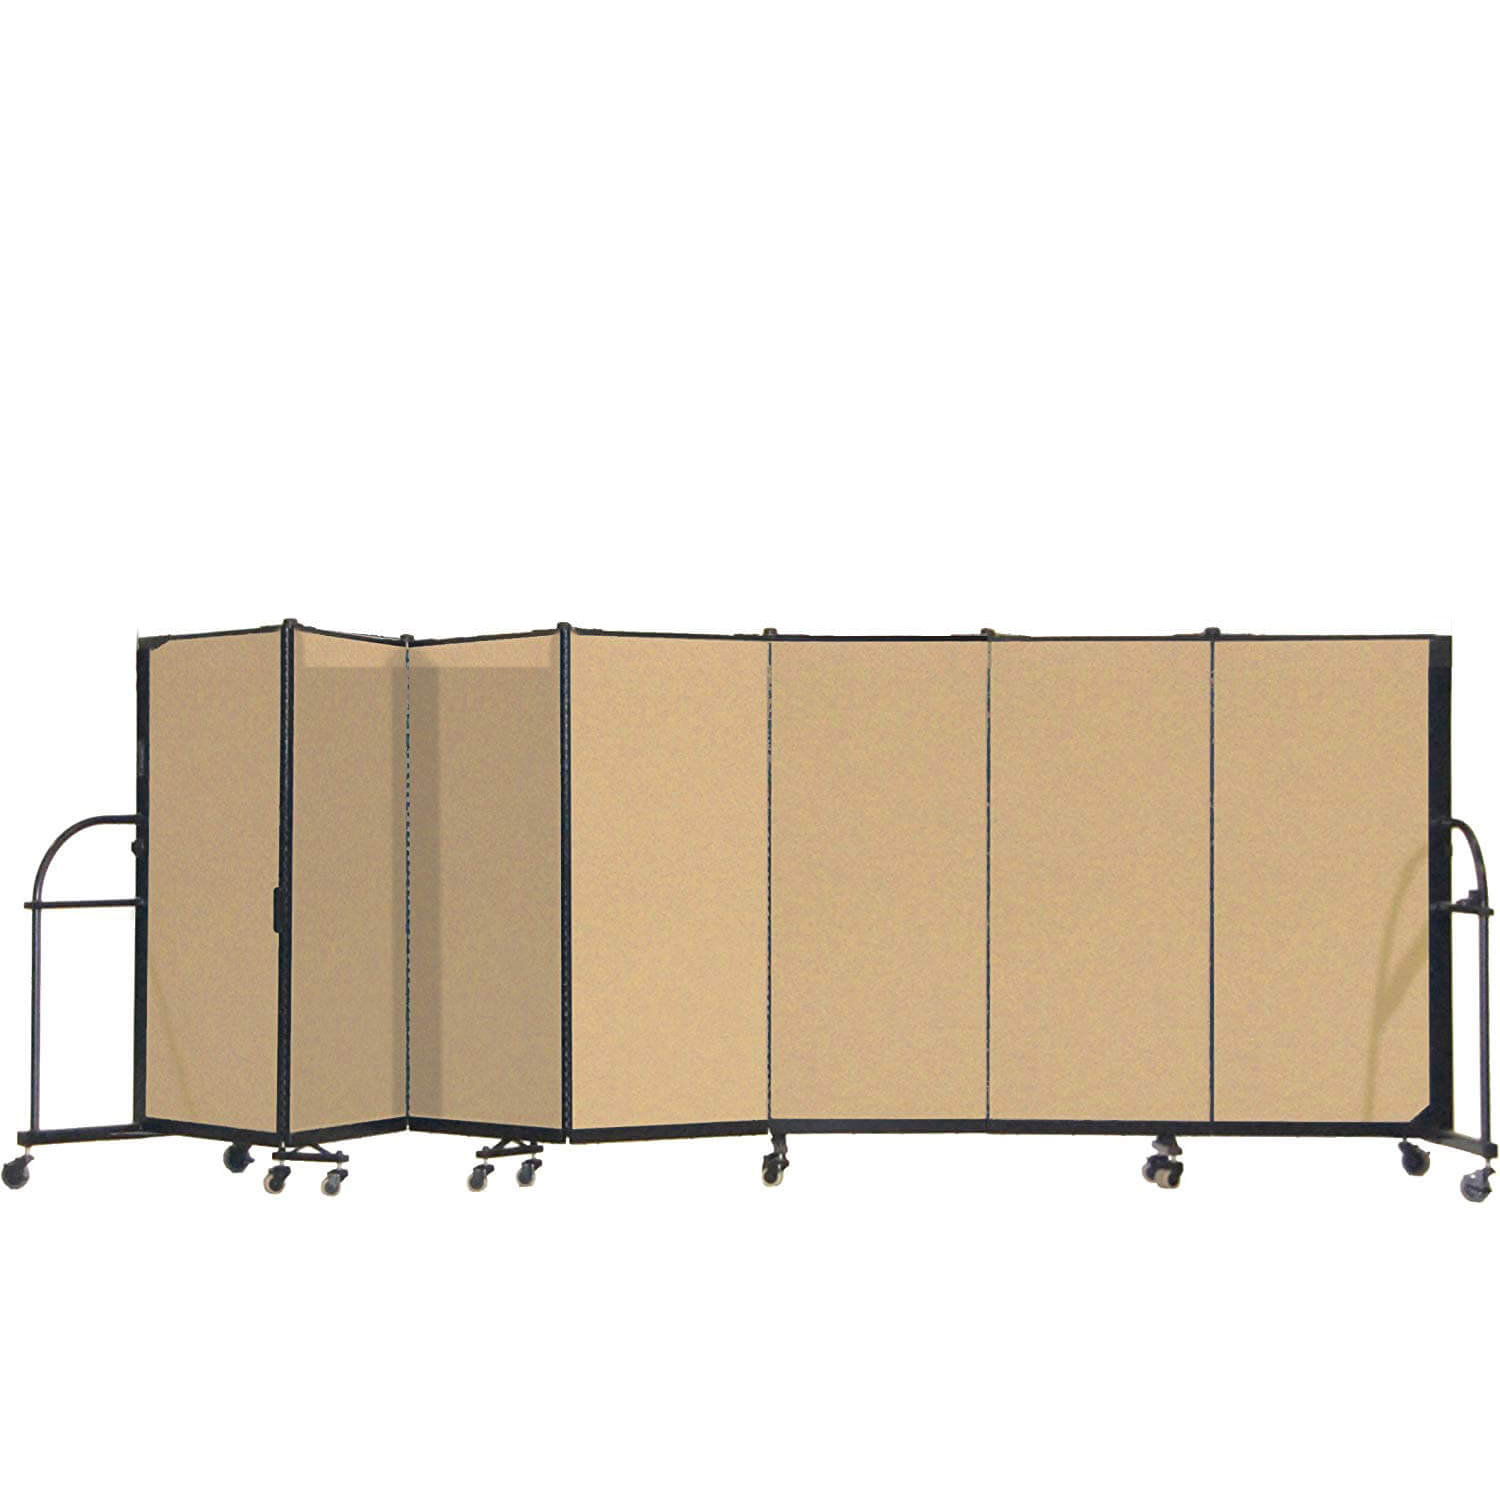 portable-room-dividers-panel-dividers-1-2-3.jpg